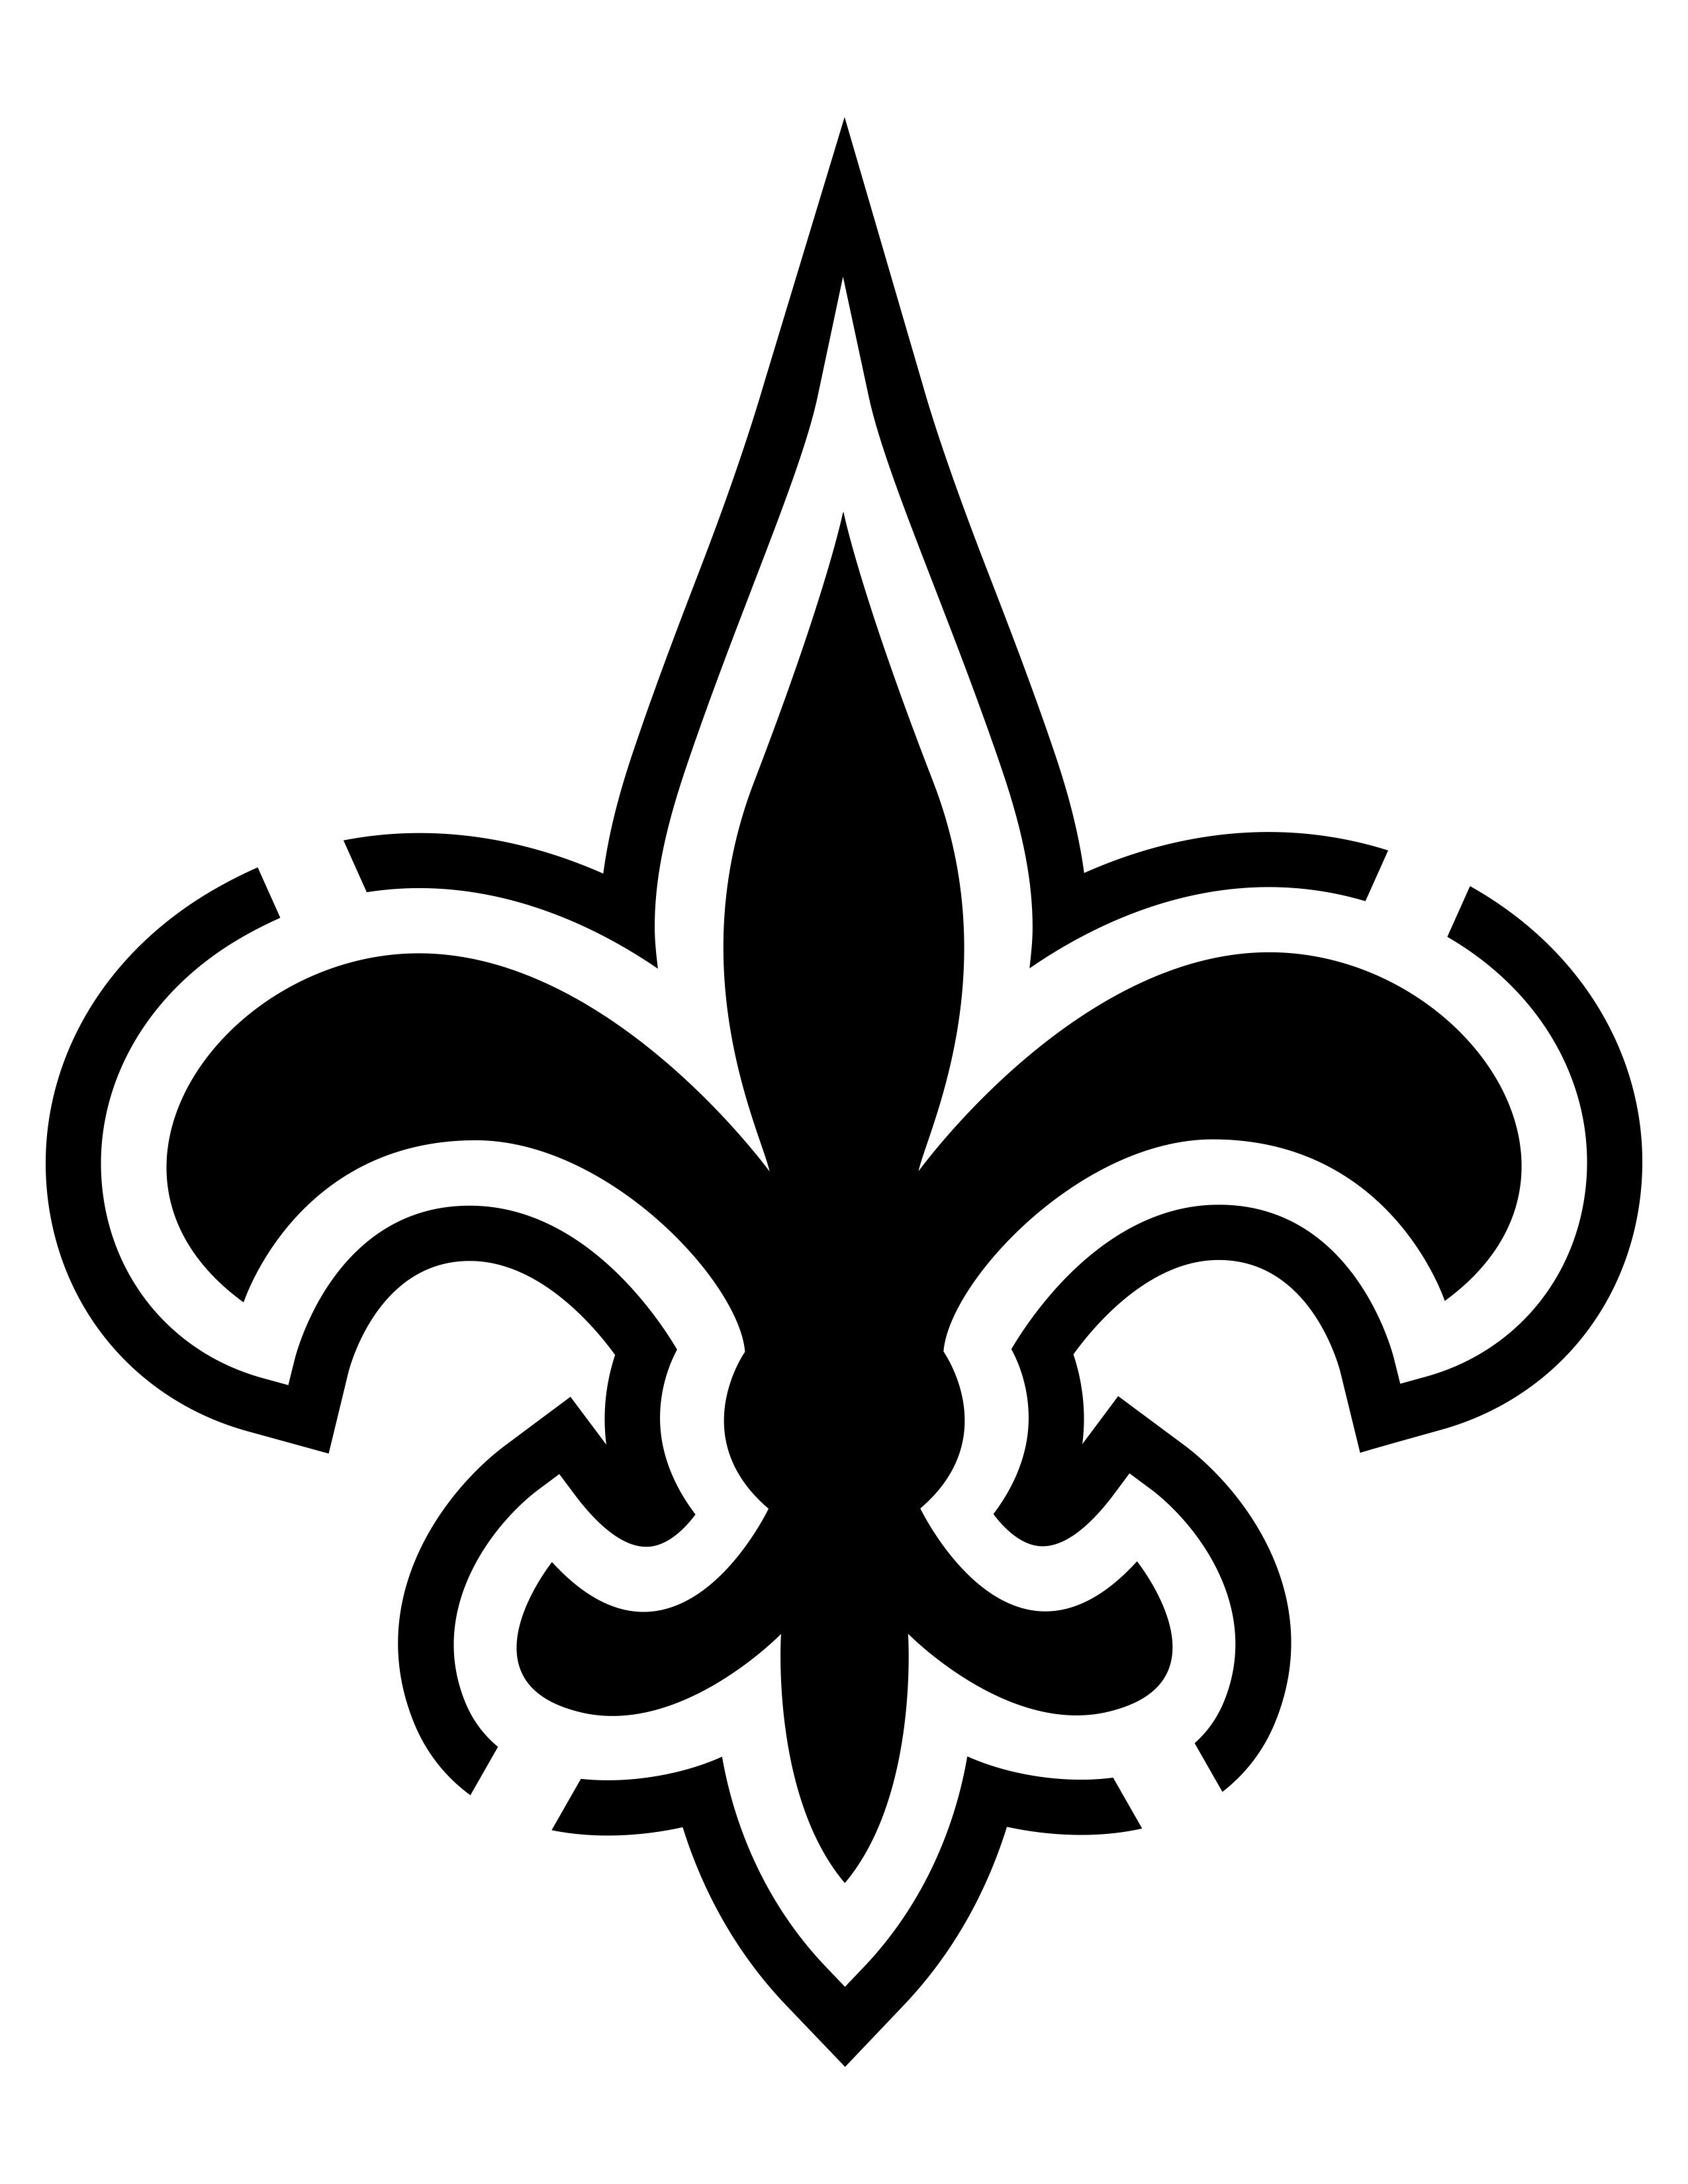 Image Result For New Orleans Saints Stencil | Scroll Saw Ideas - Printable Nfl Pumpkin Carving Patterns Free